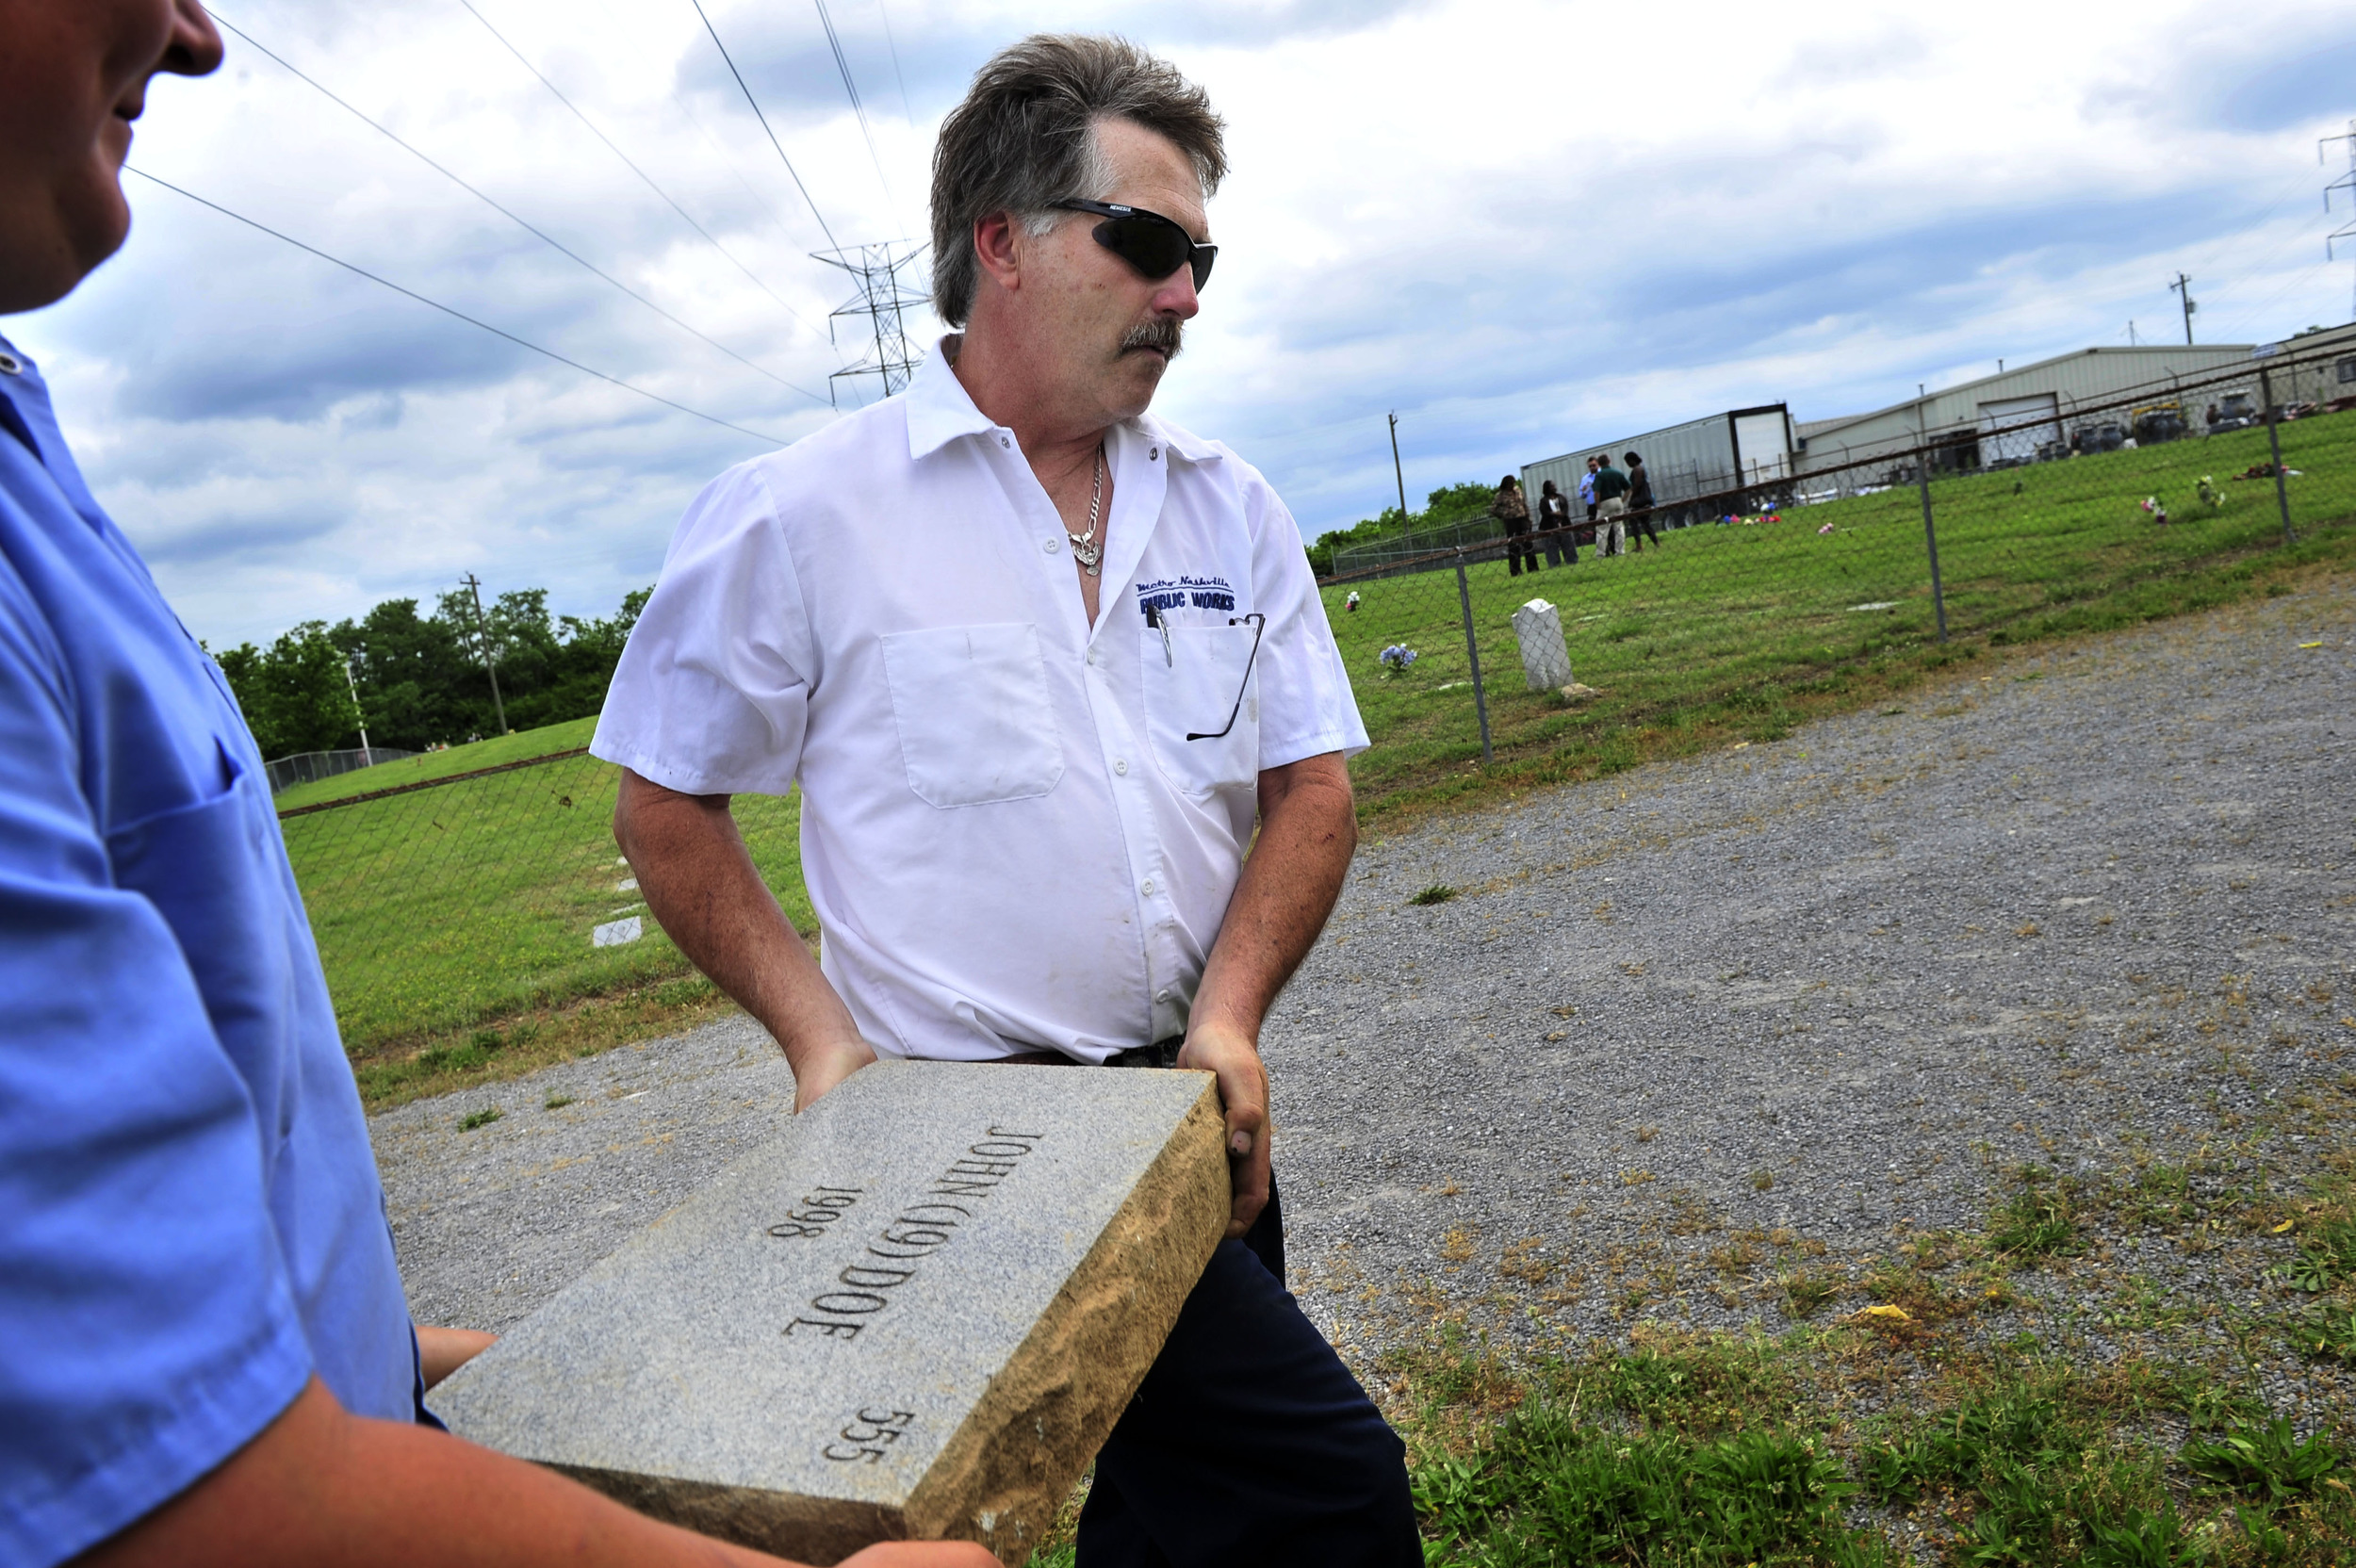 Danny Hubble, right, with Metro Public Works carries the John Doe gravestone away after replacing it with LeRyan Nicholson's named gravestone at Bordeaux Cemetary May 30, 2013 in Nashville, Tenn.